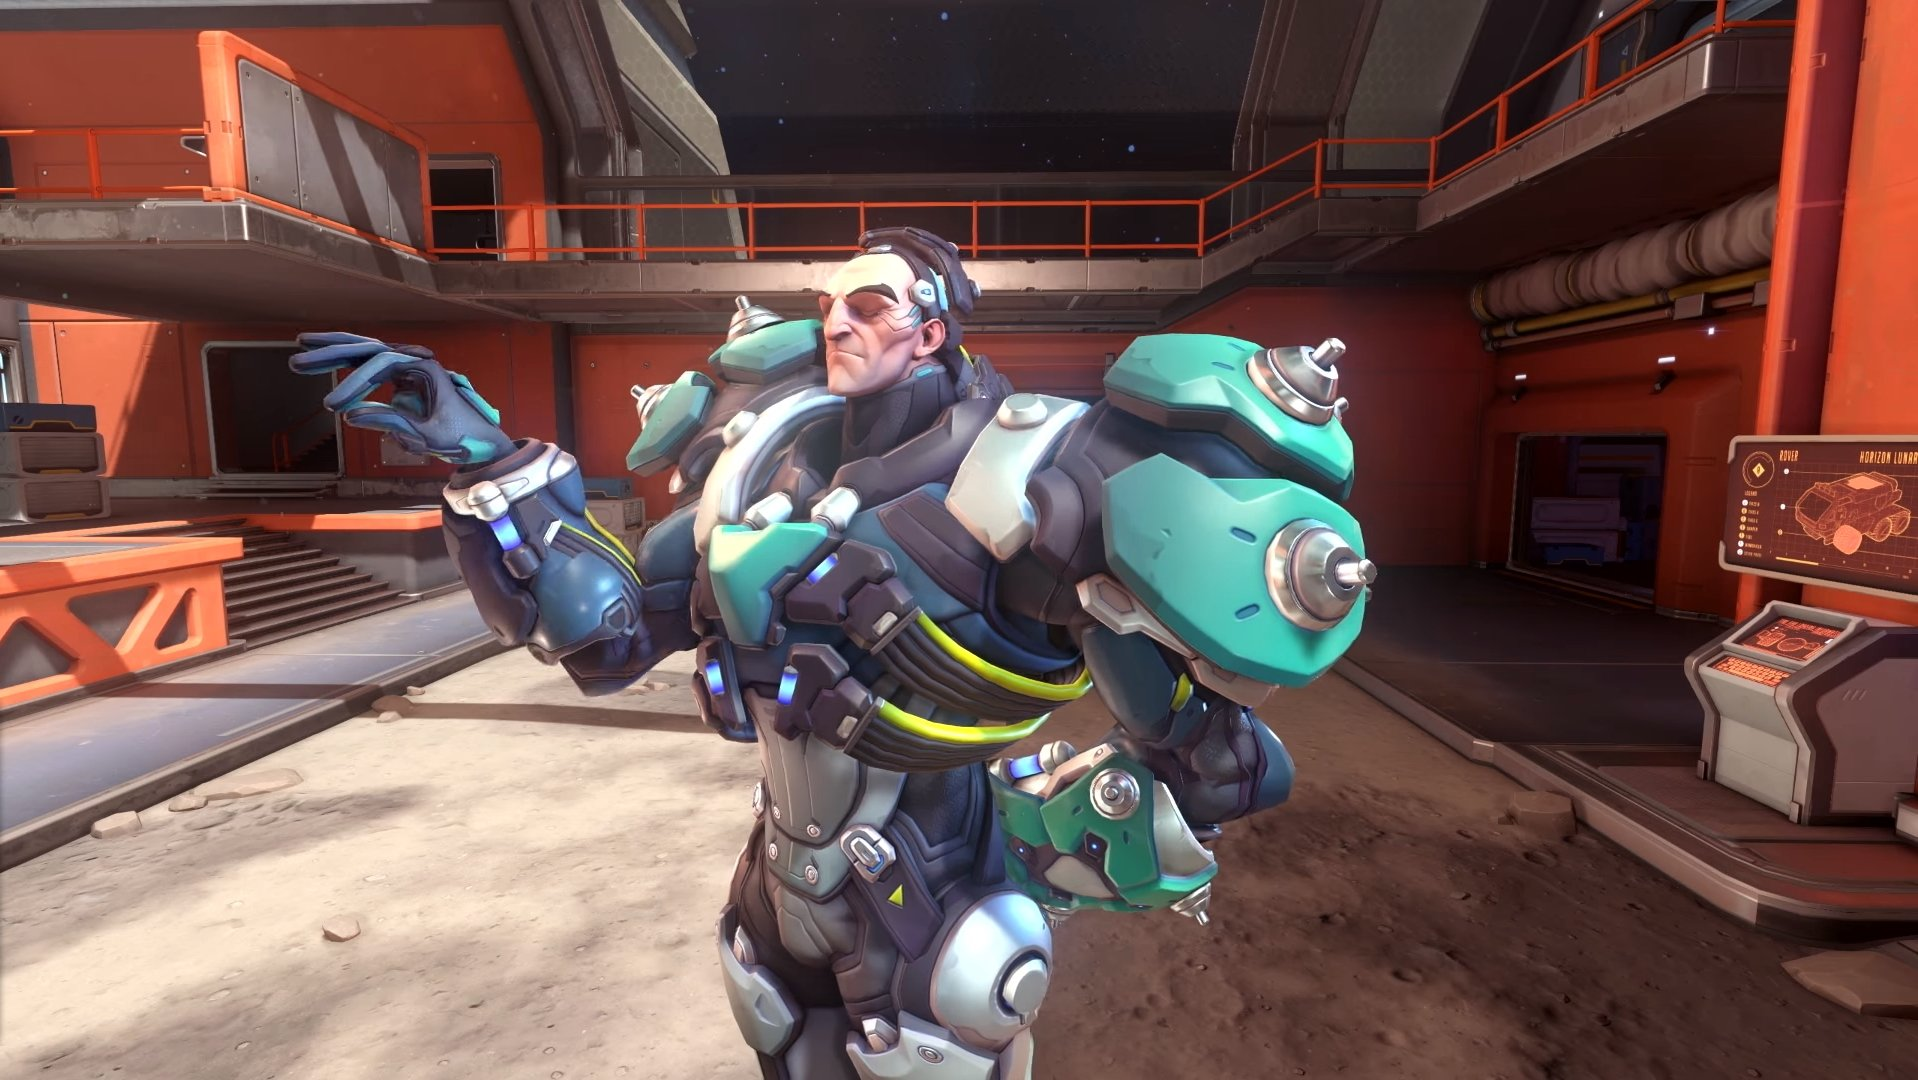 Sigma Skins gameplay and abilities overwatch